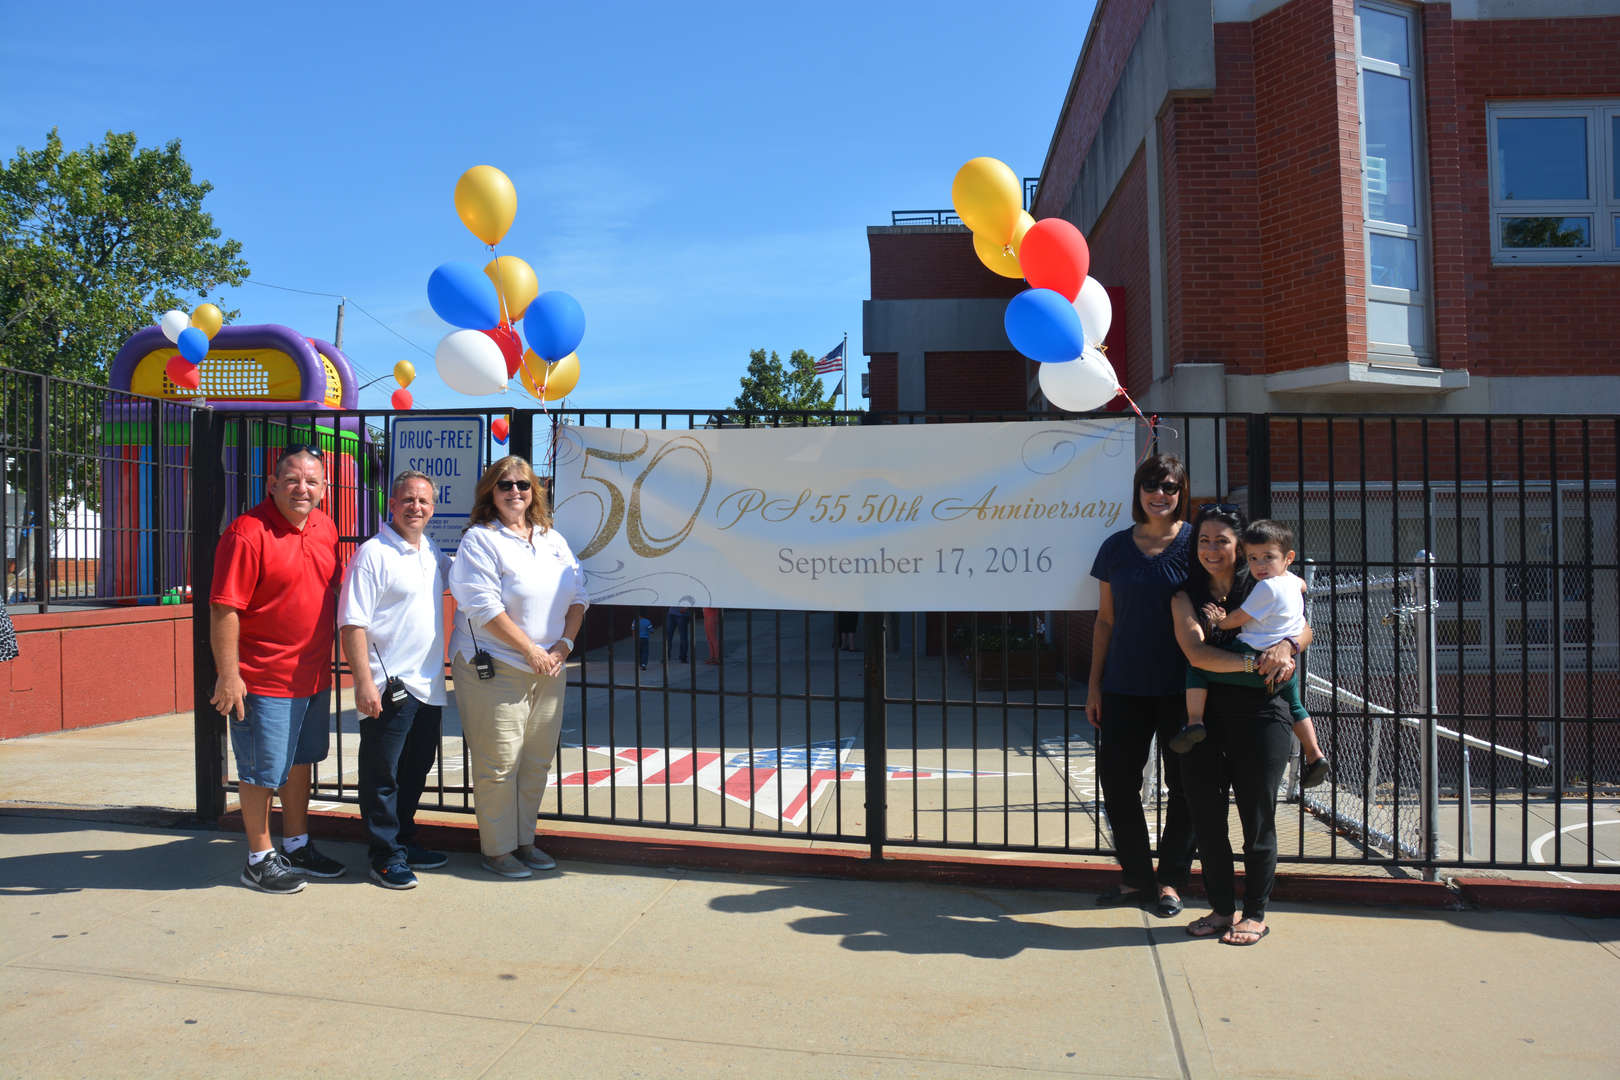 banner of our 50th birthday anniversary